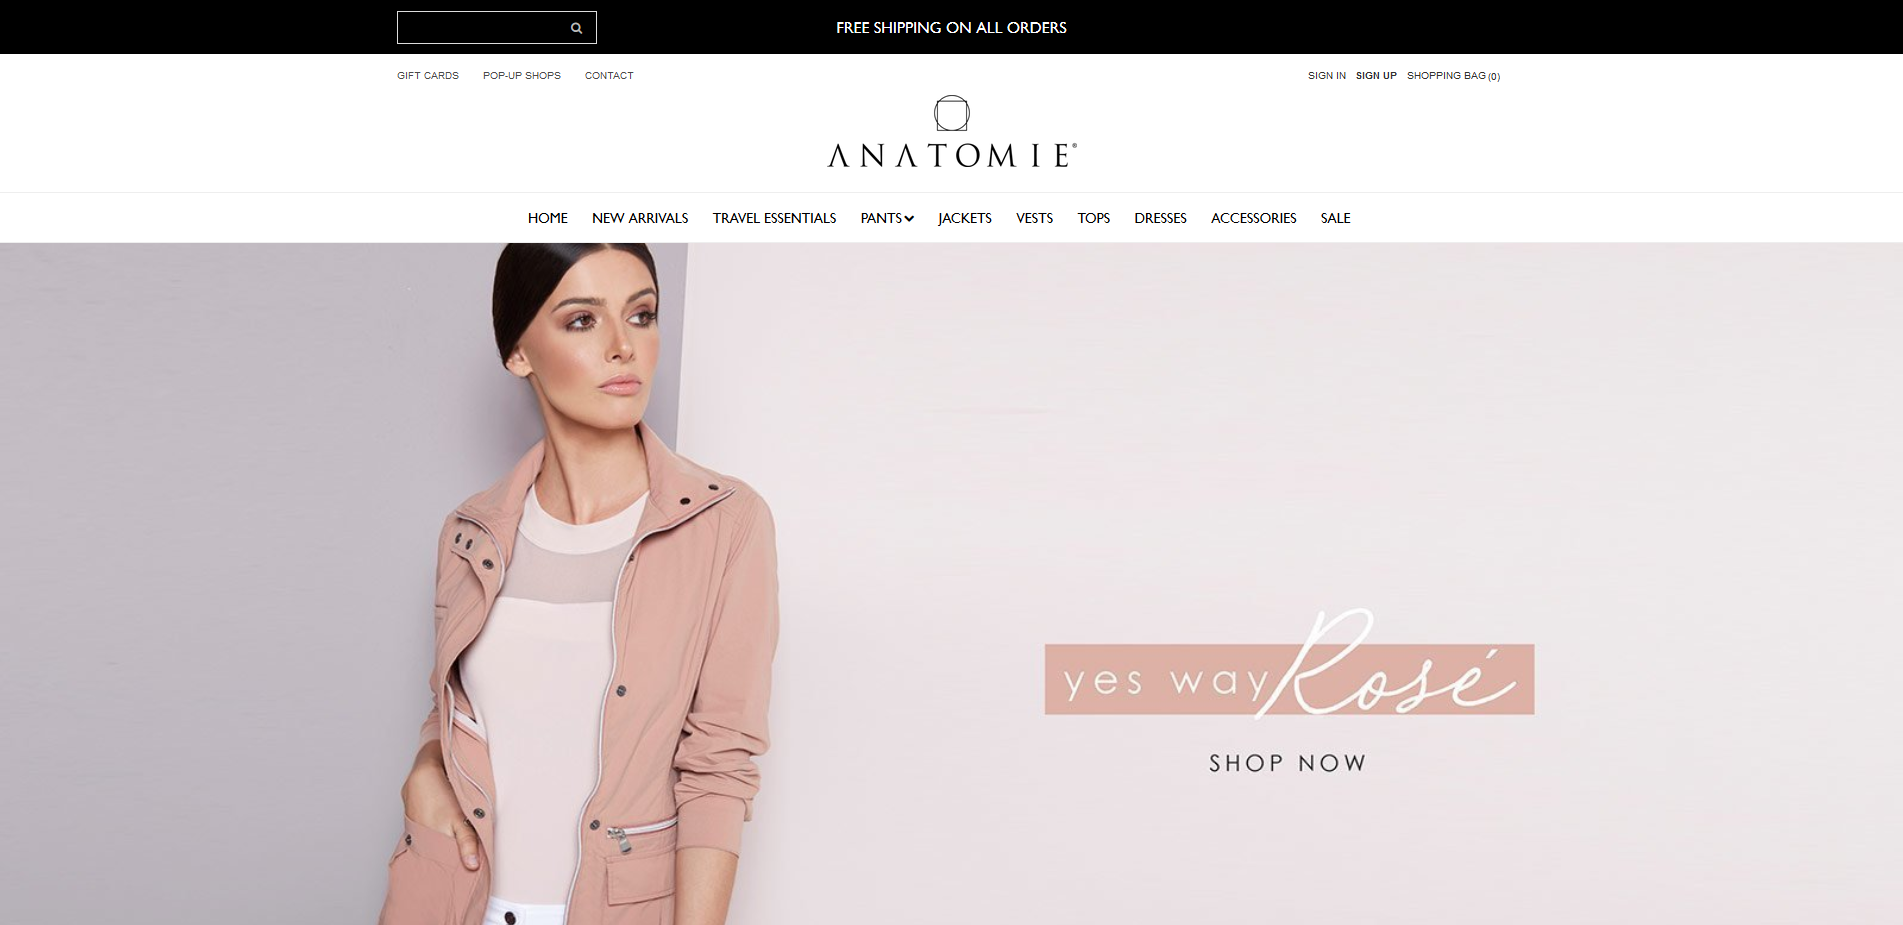 Anatomie Shopify Product Page Design by Notch Solutions